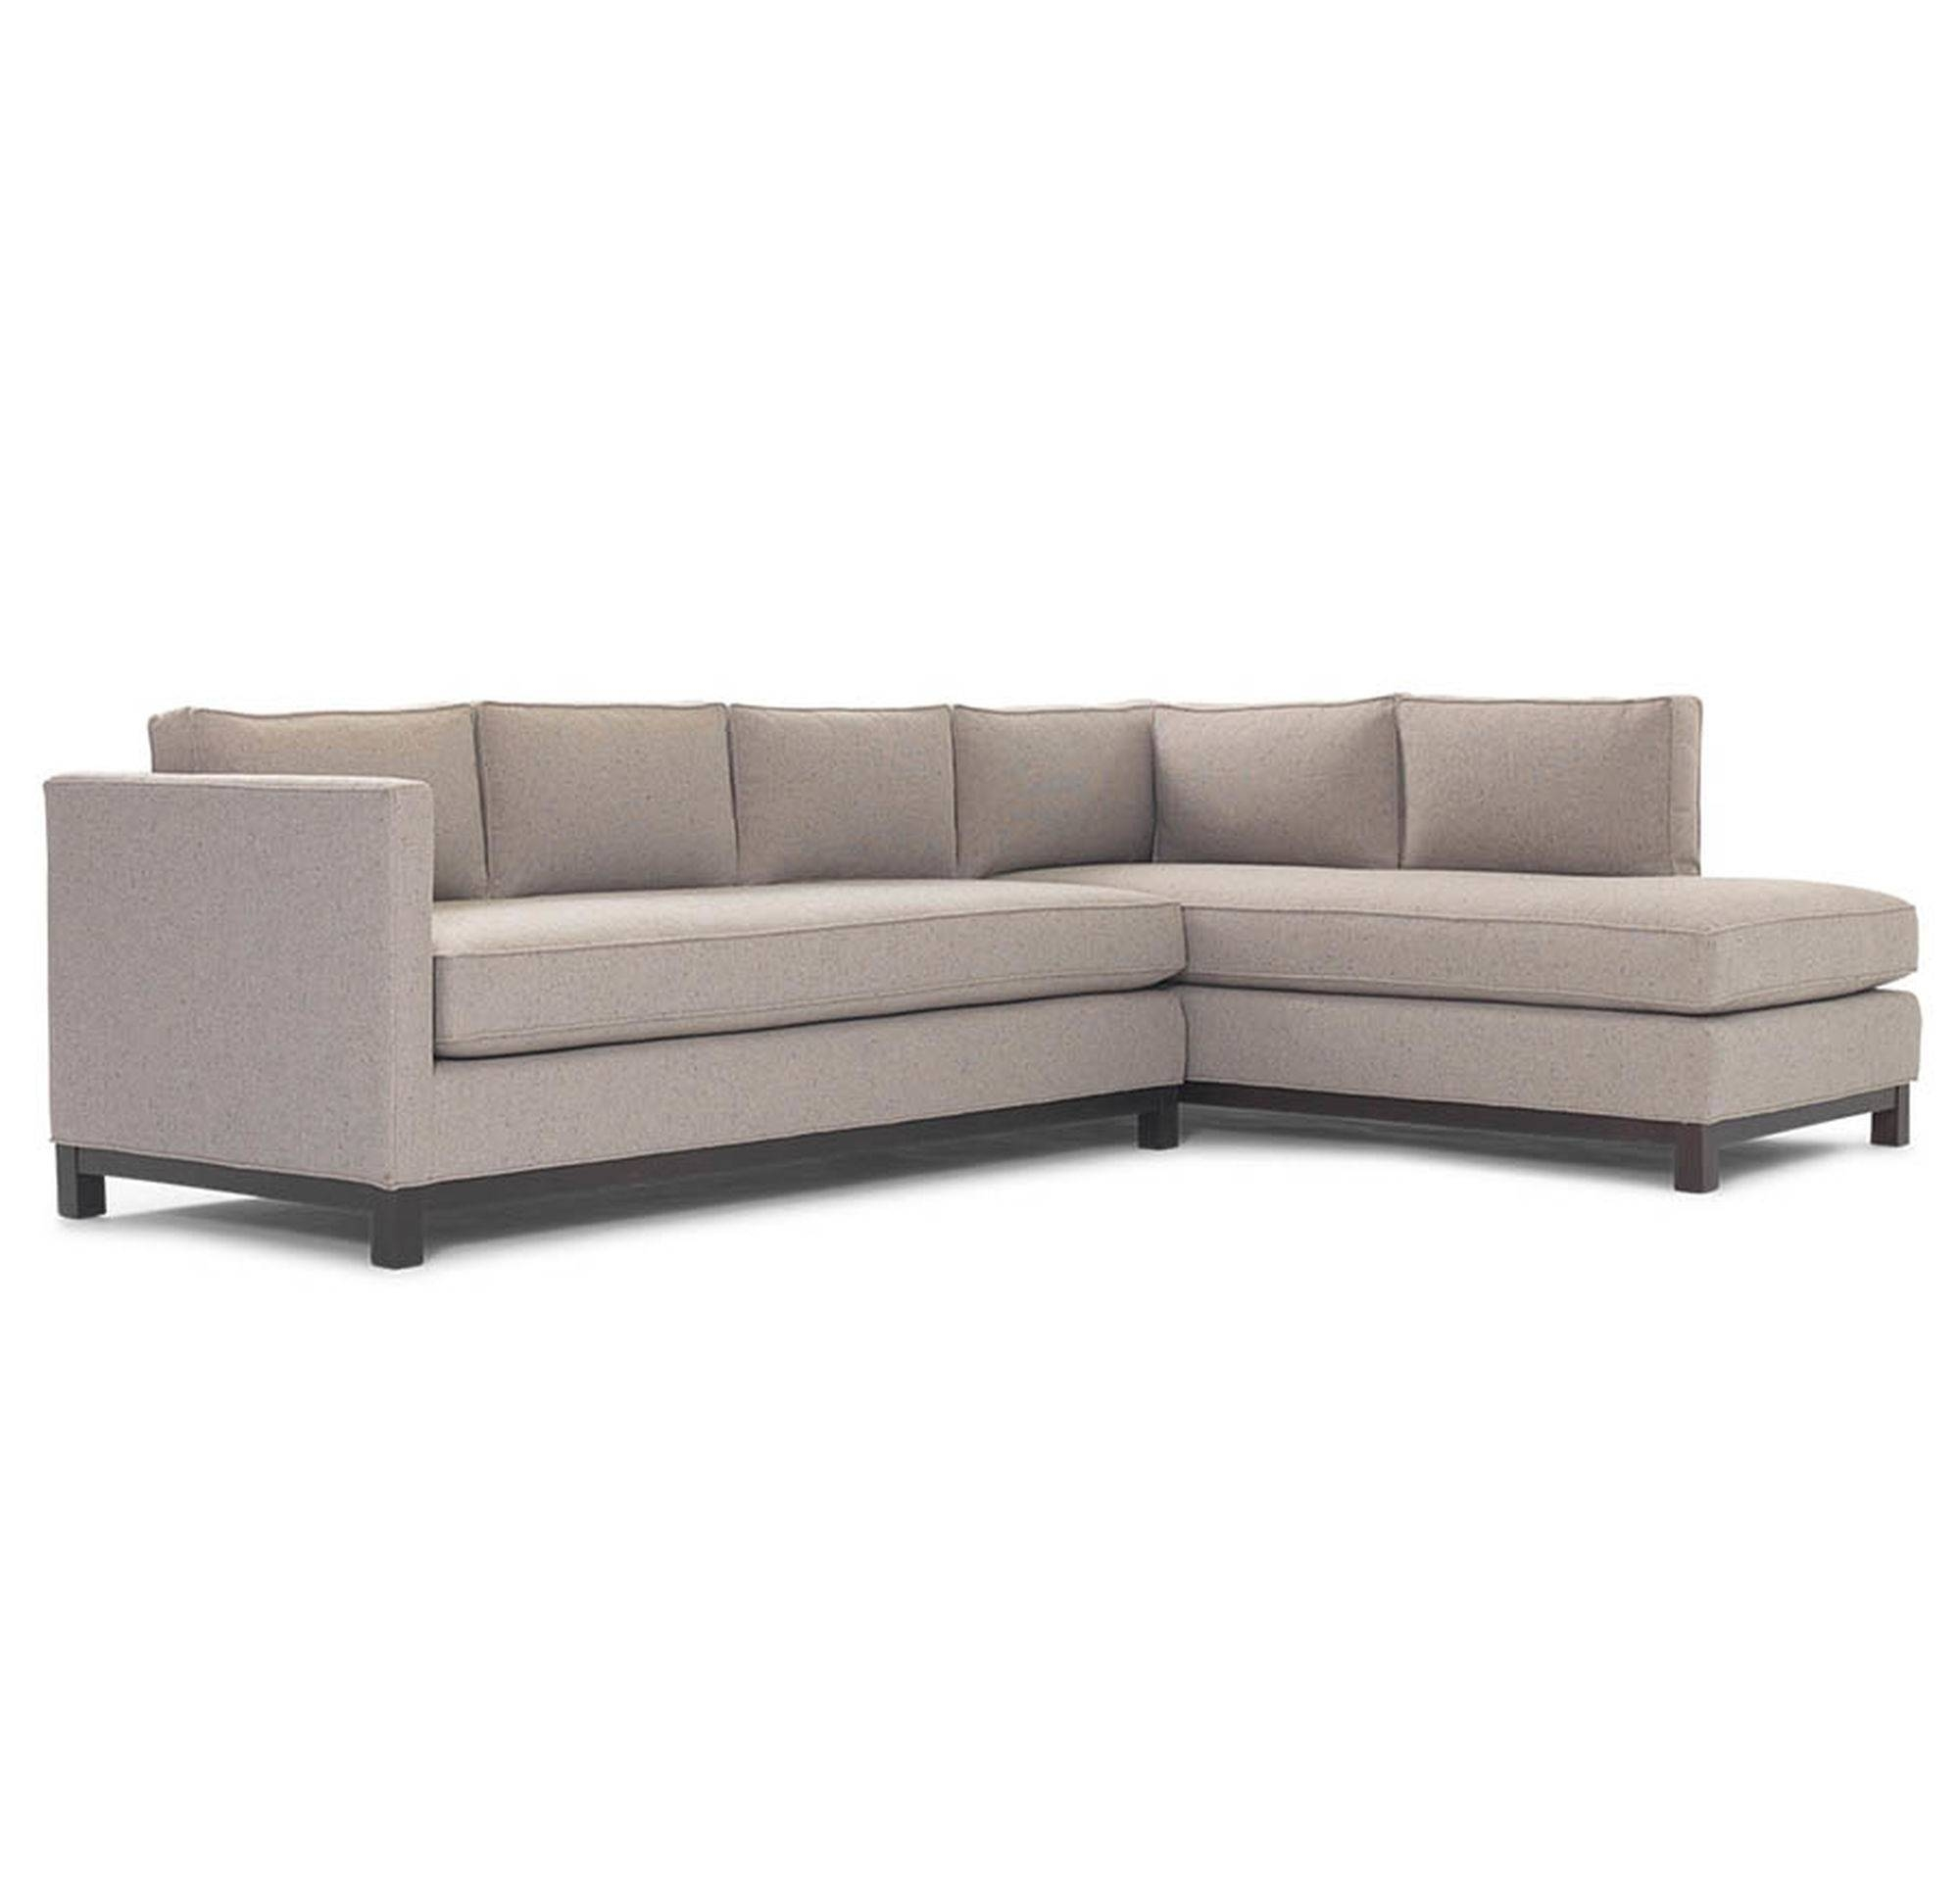 Sectional Sofas Clearance Toronto | Best Sofa Decoration | Outdoor for Mitchell Gold Sofa Slipcovers (Image 22 of 26)